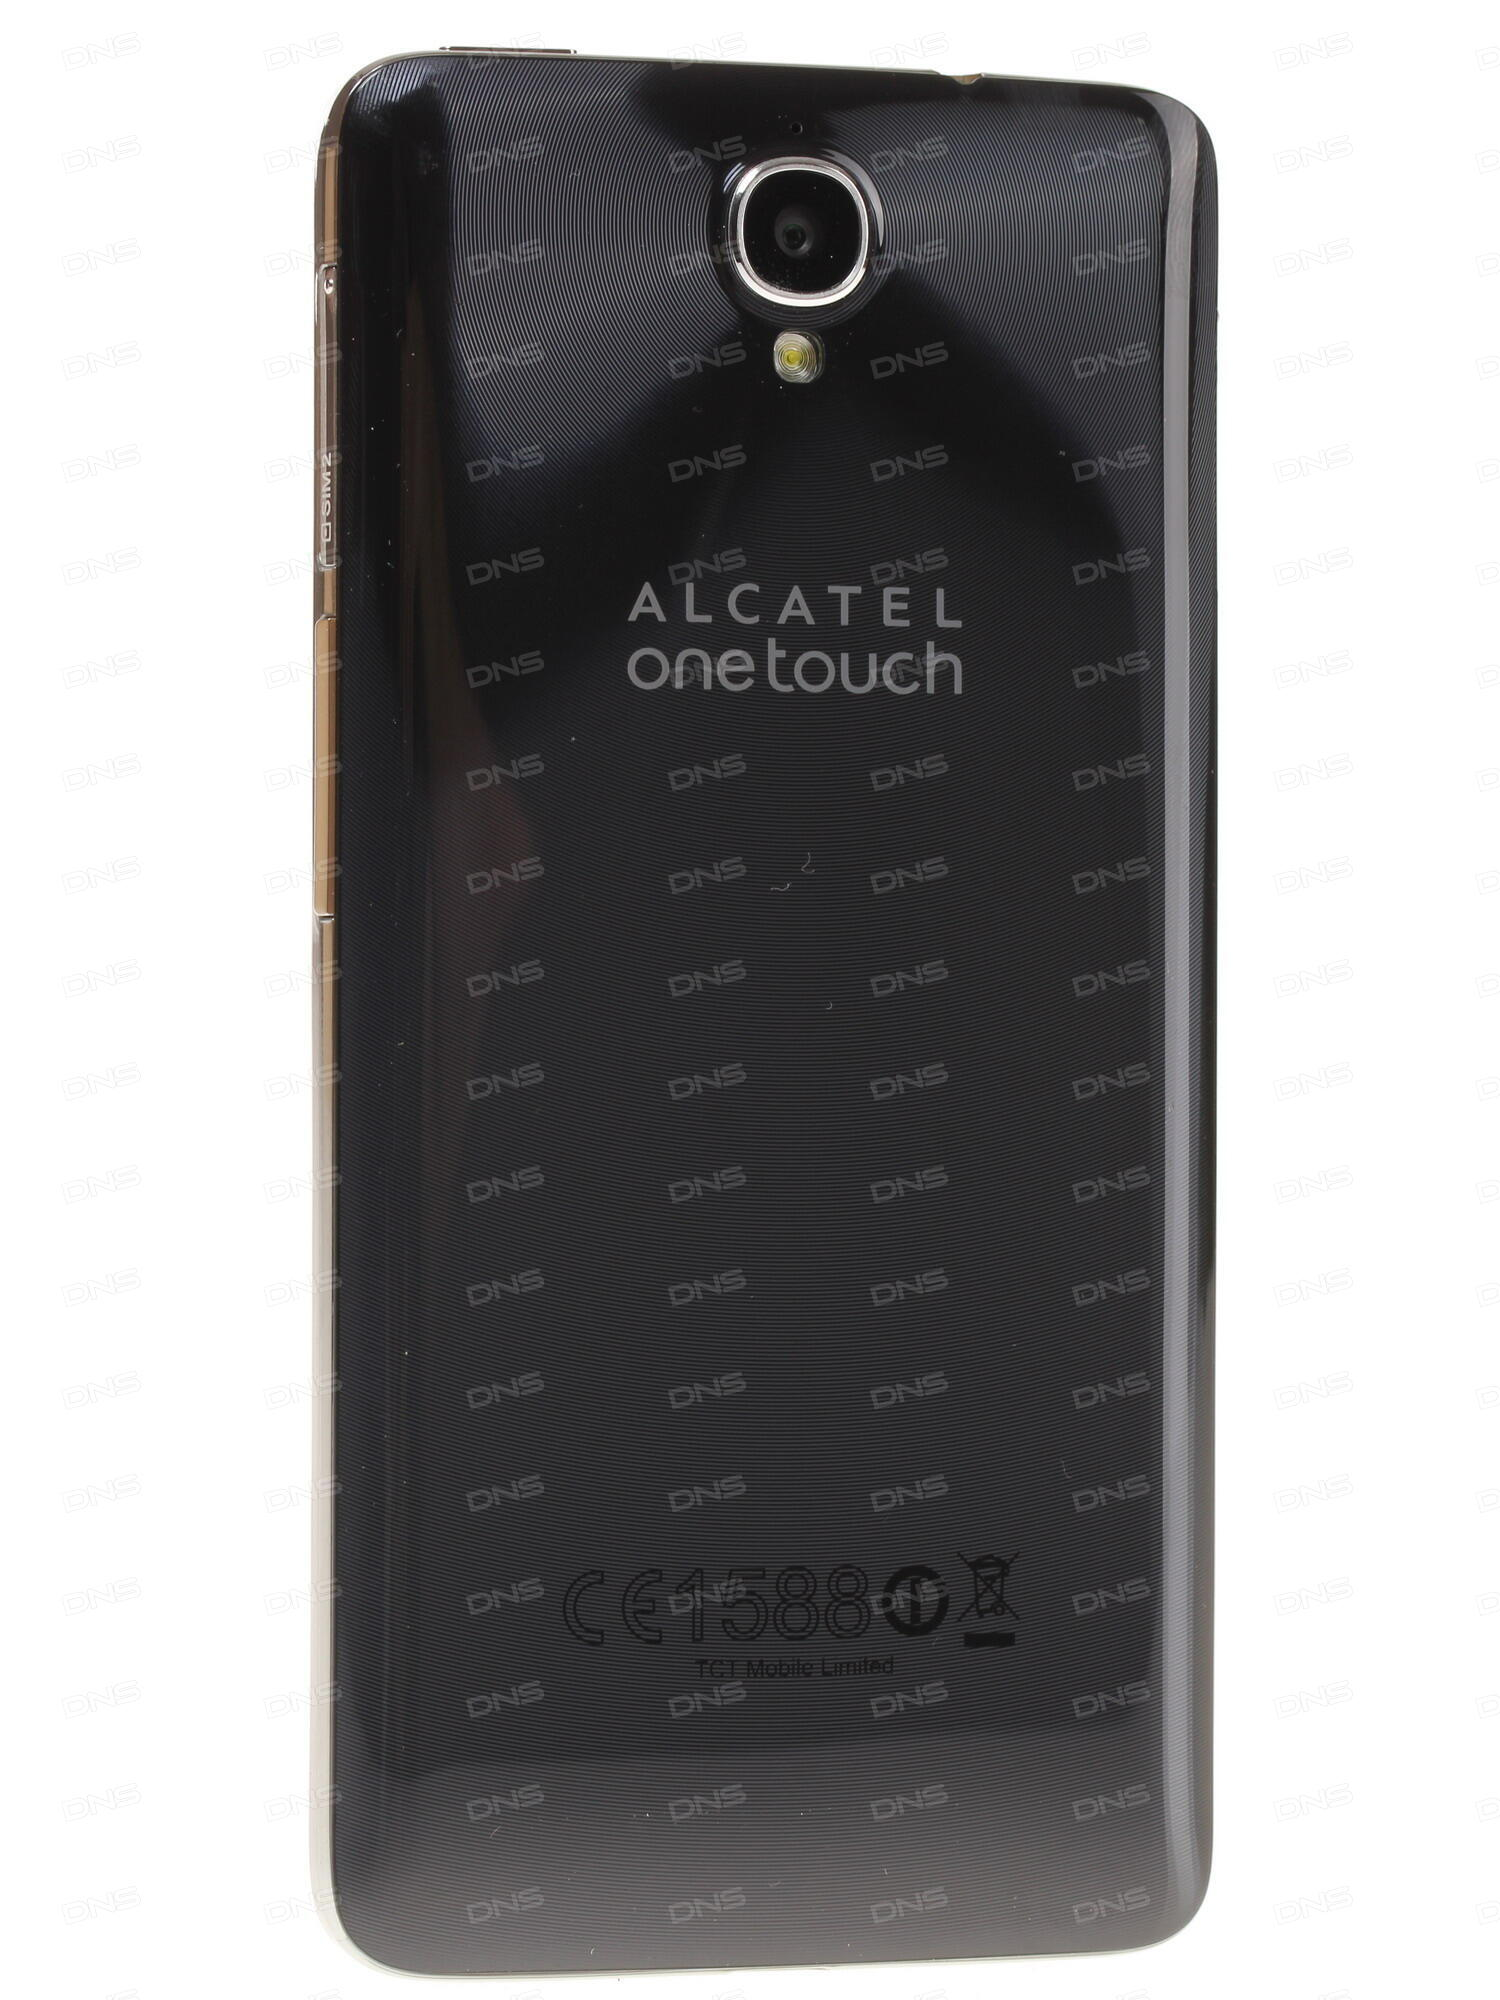 alcatel one touch 6043d инструкция